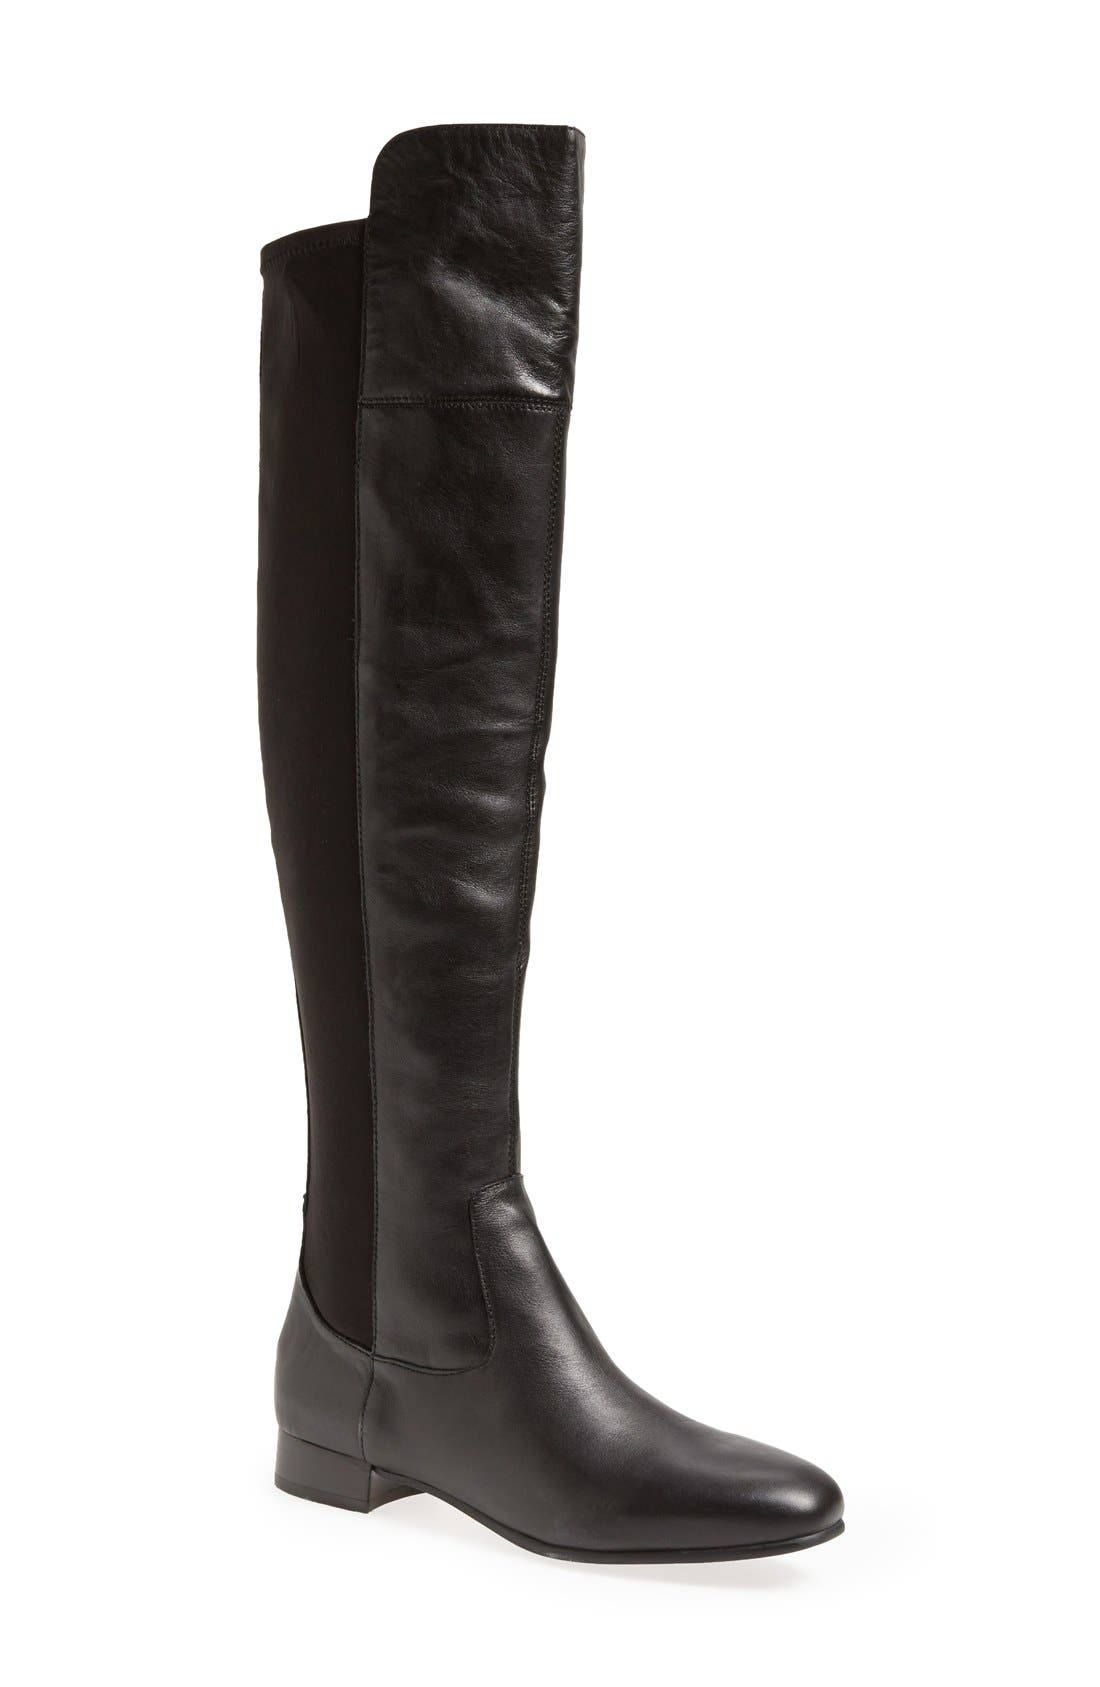 LOUISE ET CIE 'Andora' Over the Knee Boot, Main, color, 002